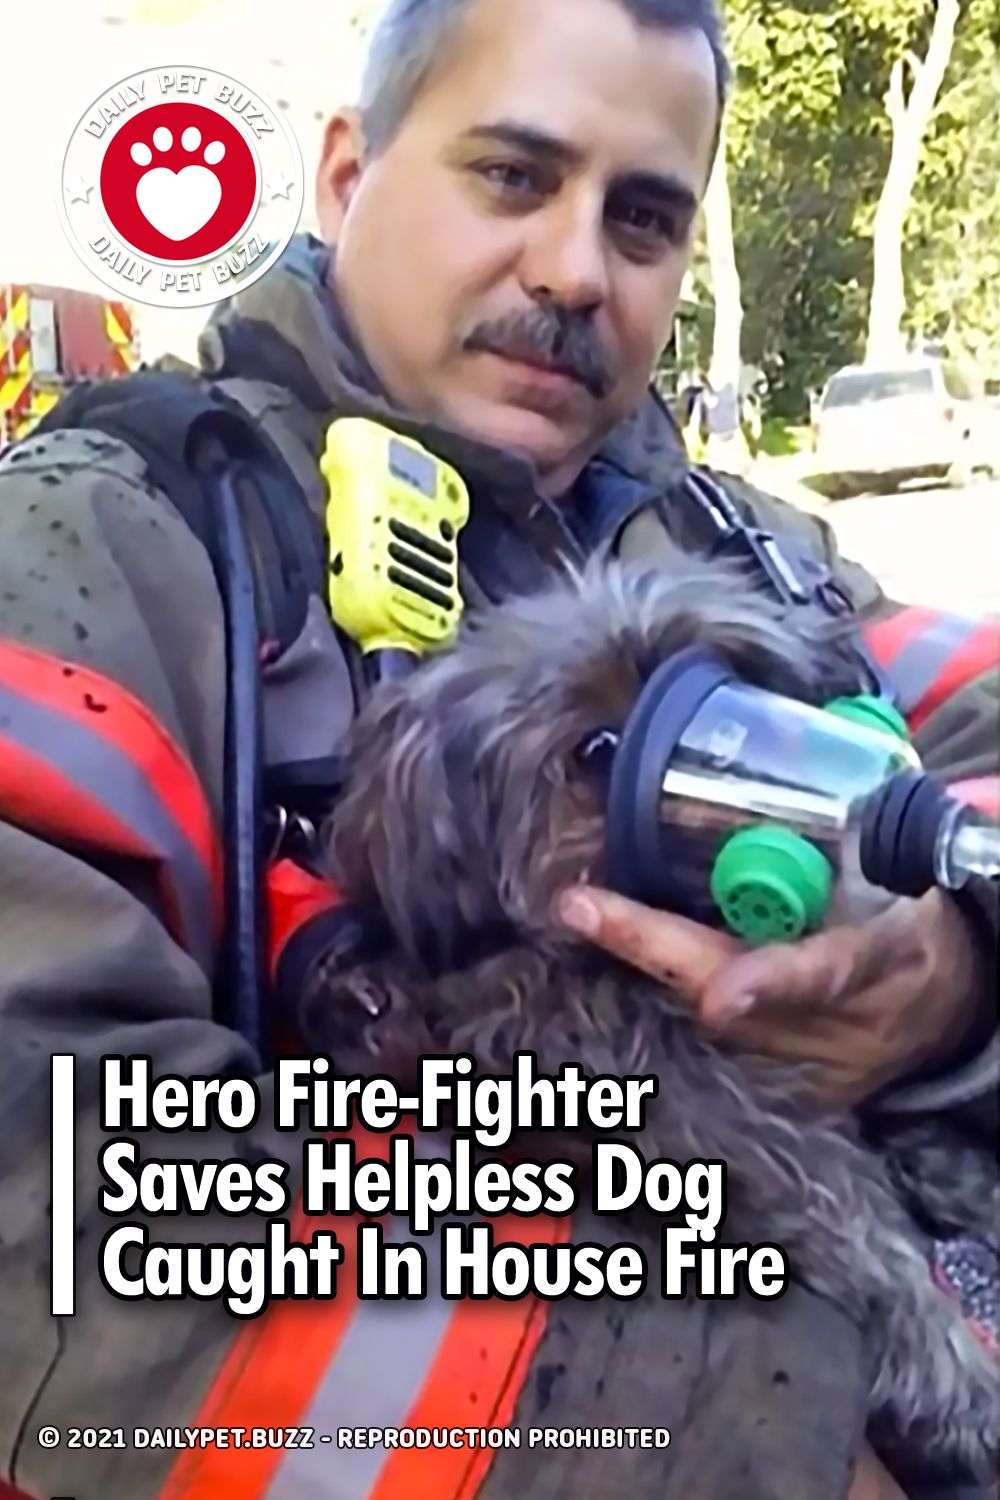 Hero Fire-Fighter Saves Helpless Dog Caught In House Fire